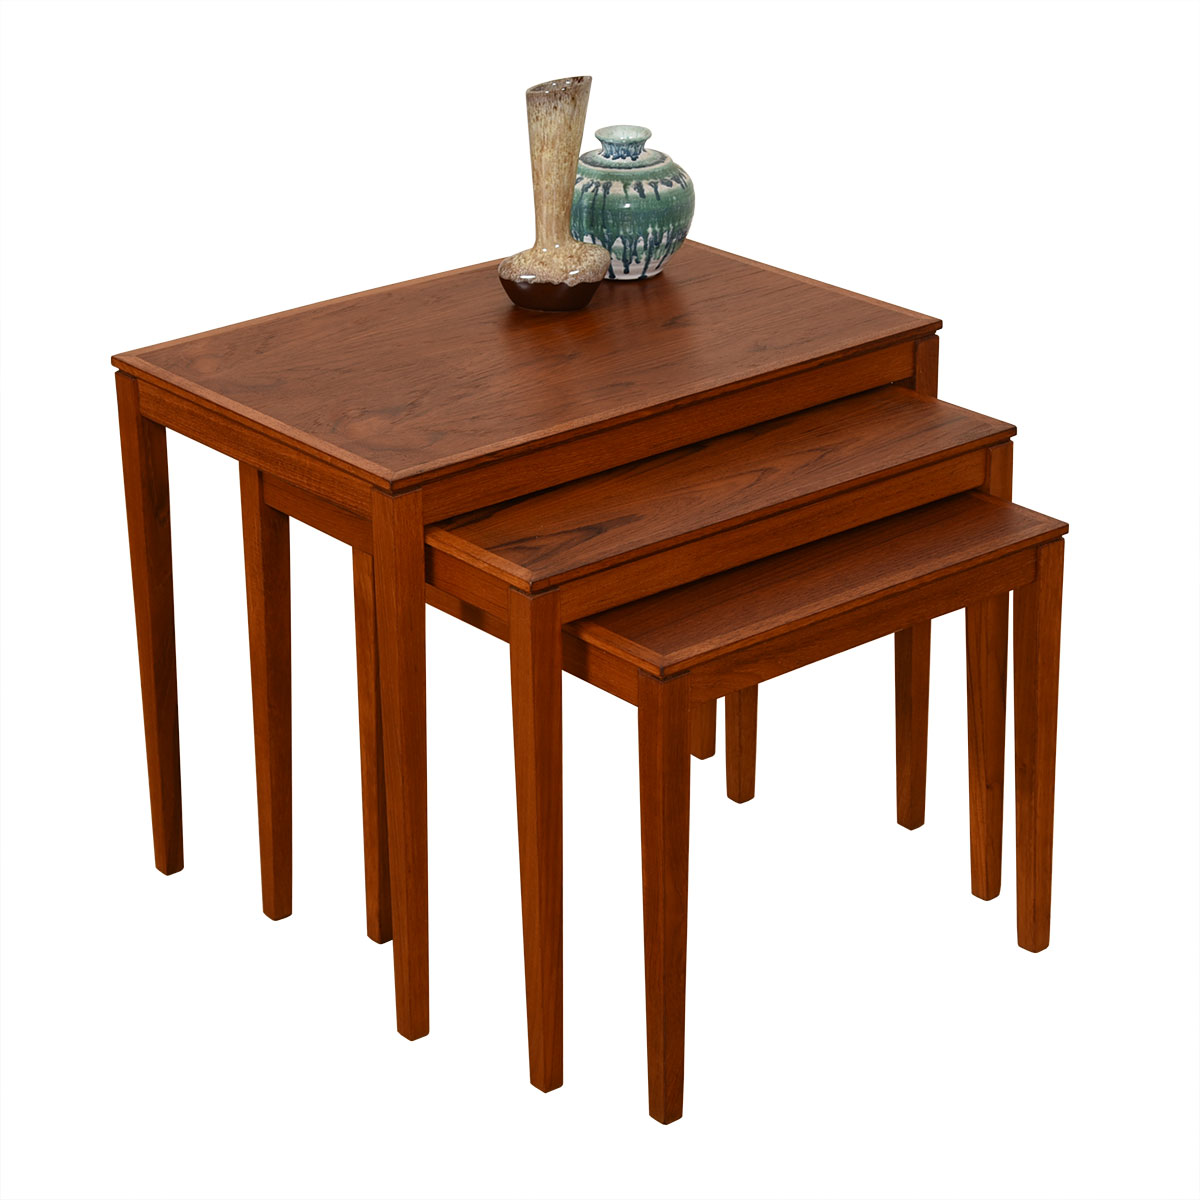 Set of 3 Danish Modern Teak Nesting Tables